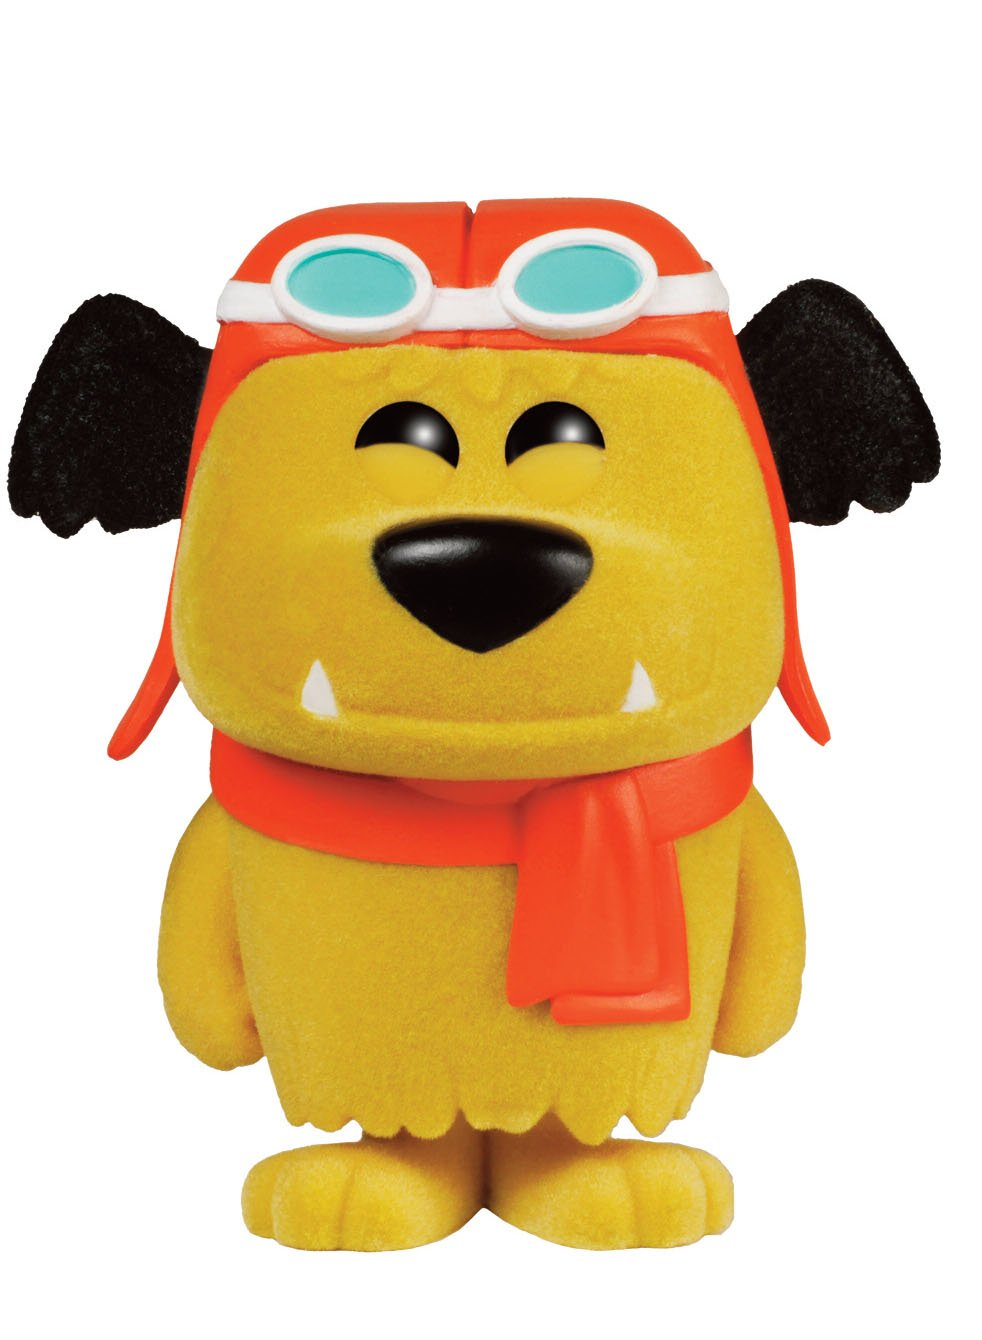 Hanna Barbera POP! Animation Vinyl Figure Figura Wacky Races Flocked Muttley Limited 9 cm Funko